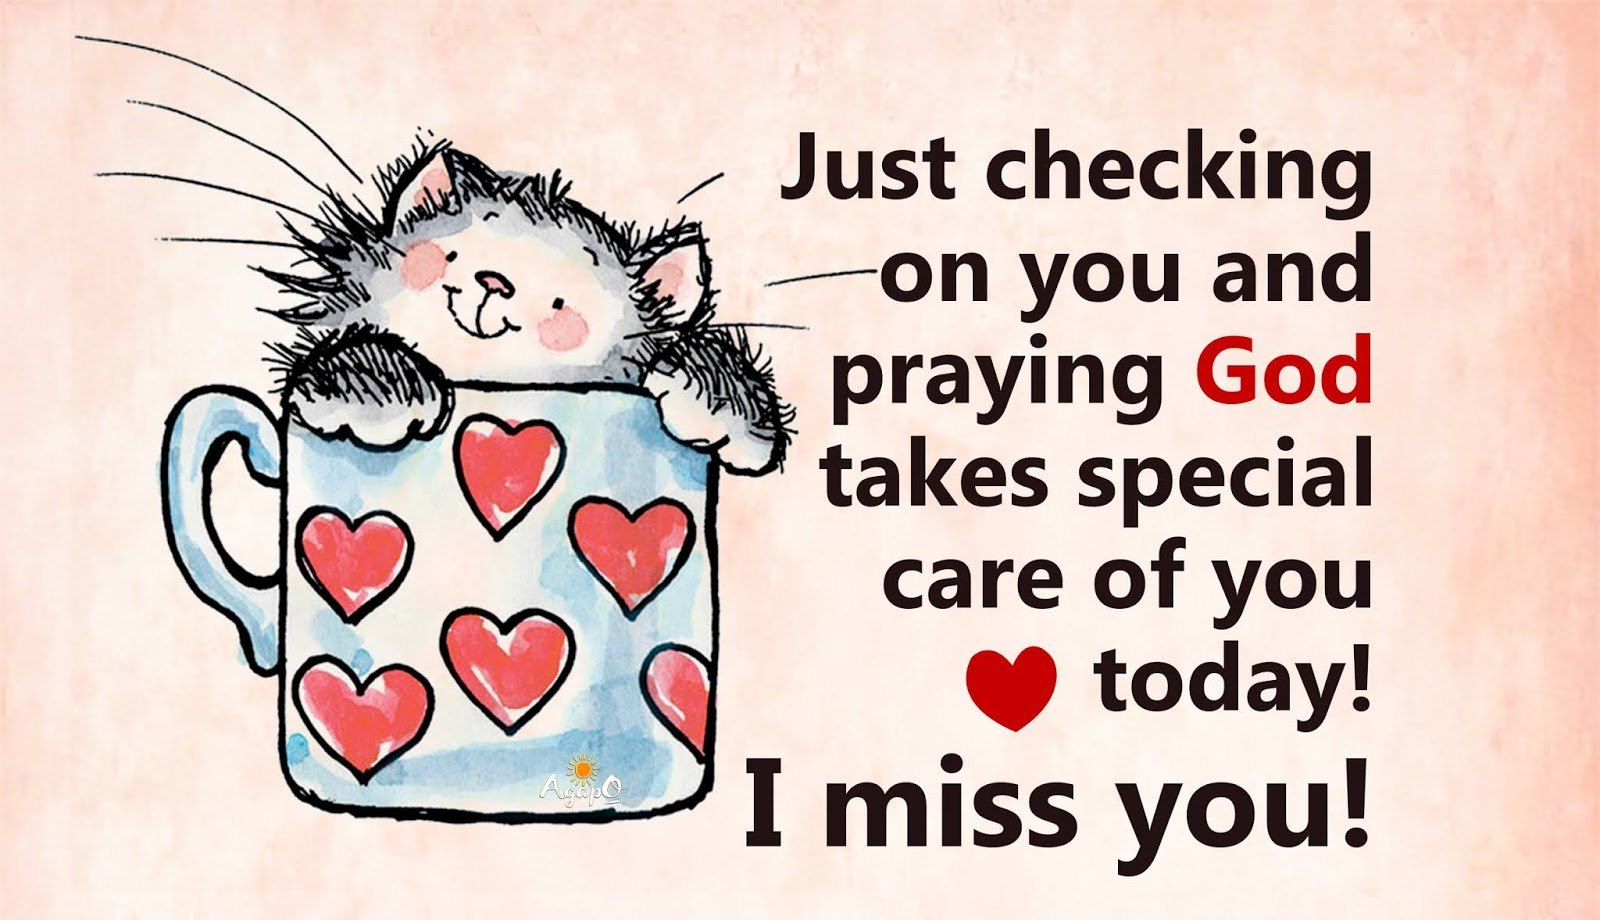 Just checking and praying on you!